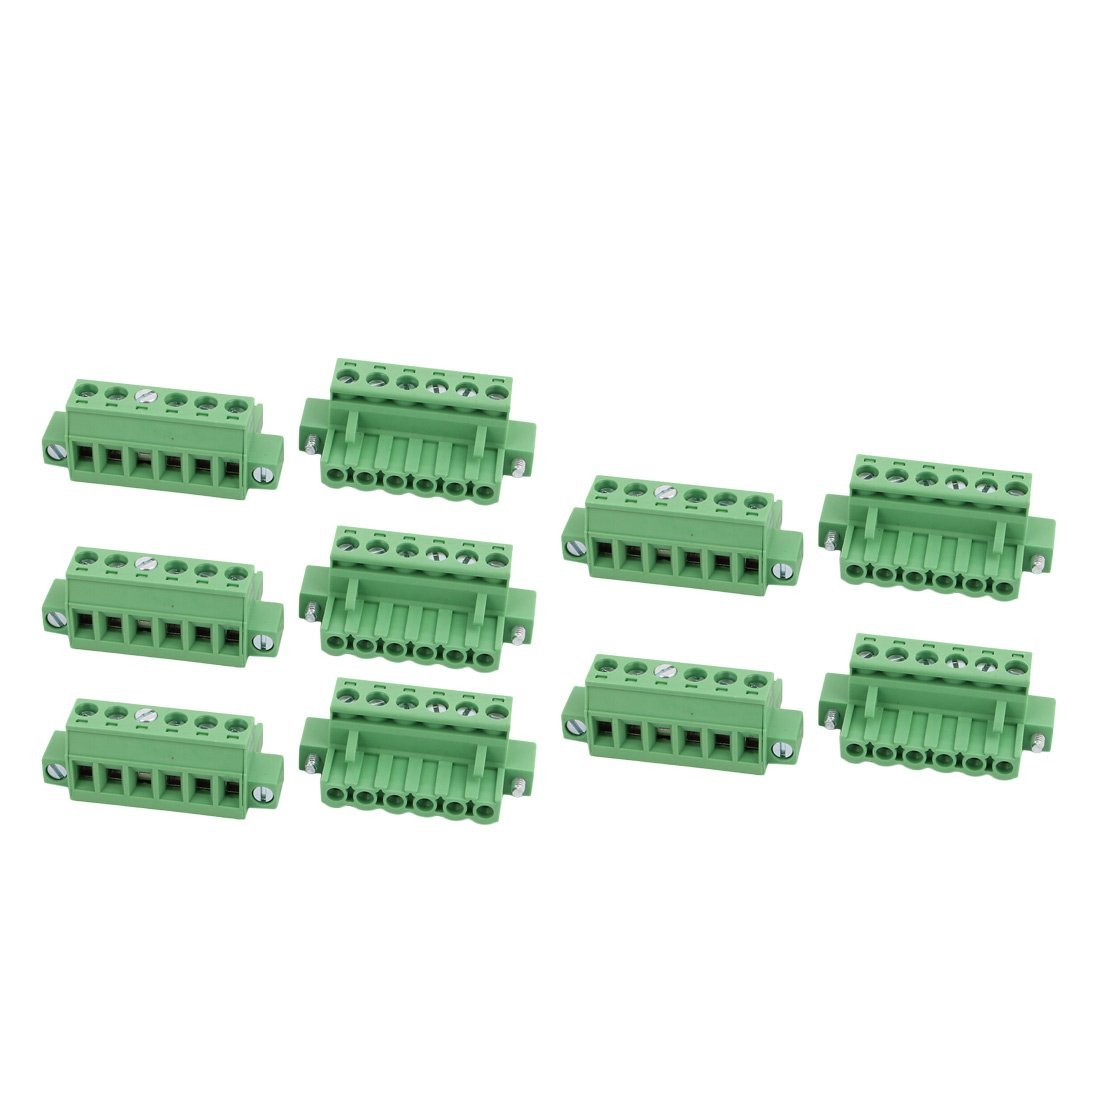 uxcell 10 Pcs LC1M AC300V 15A 5.0mm Pitch 6P PCB Mount Terminal Block Wire Connector